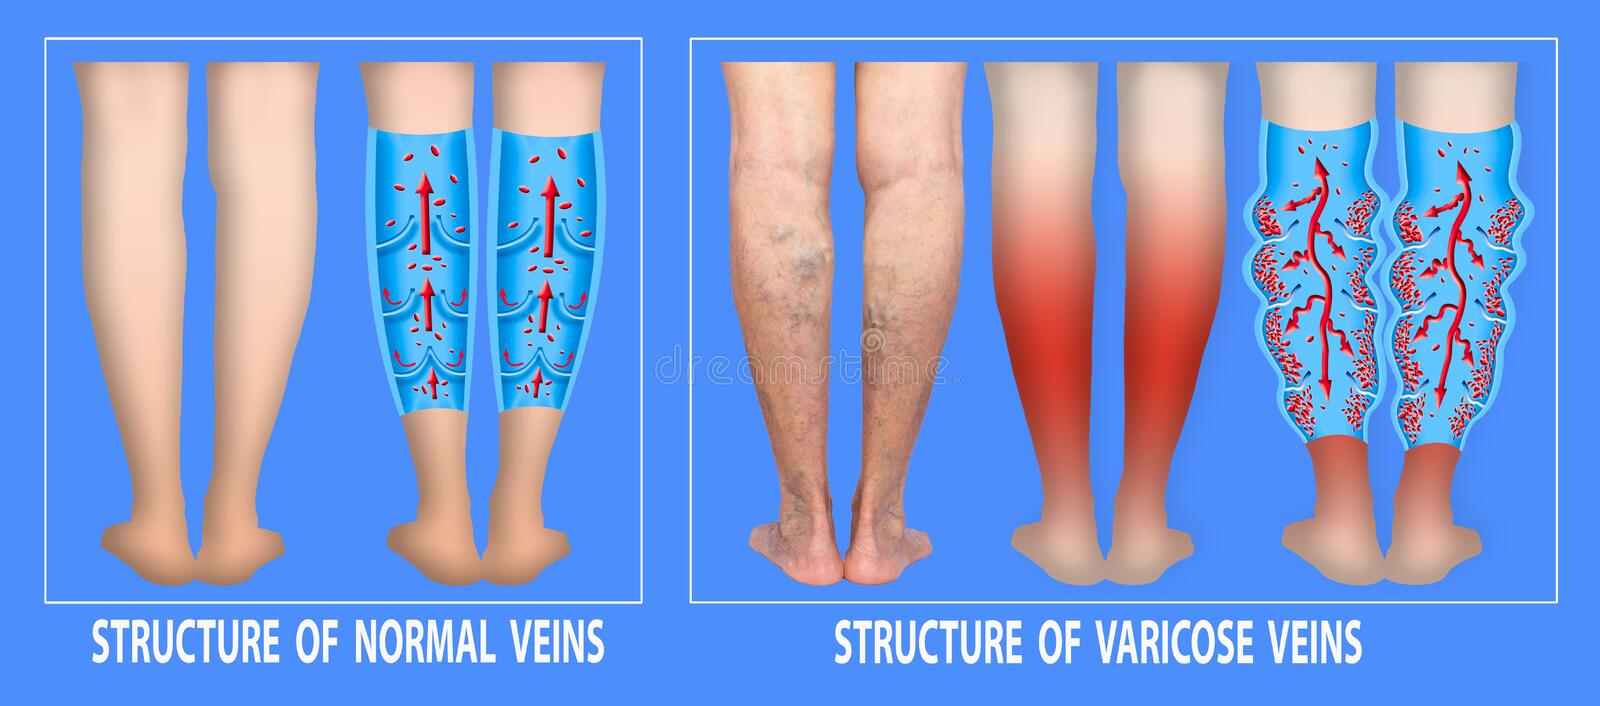 Varicose veins on a female senior legs. The structure of normal and varicose veins. stock illustration